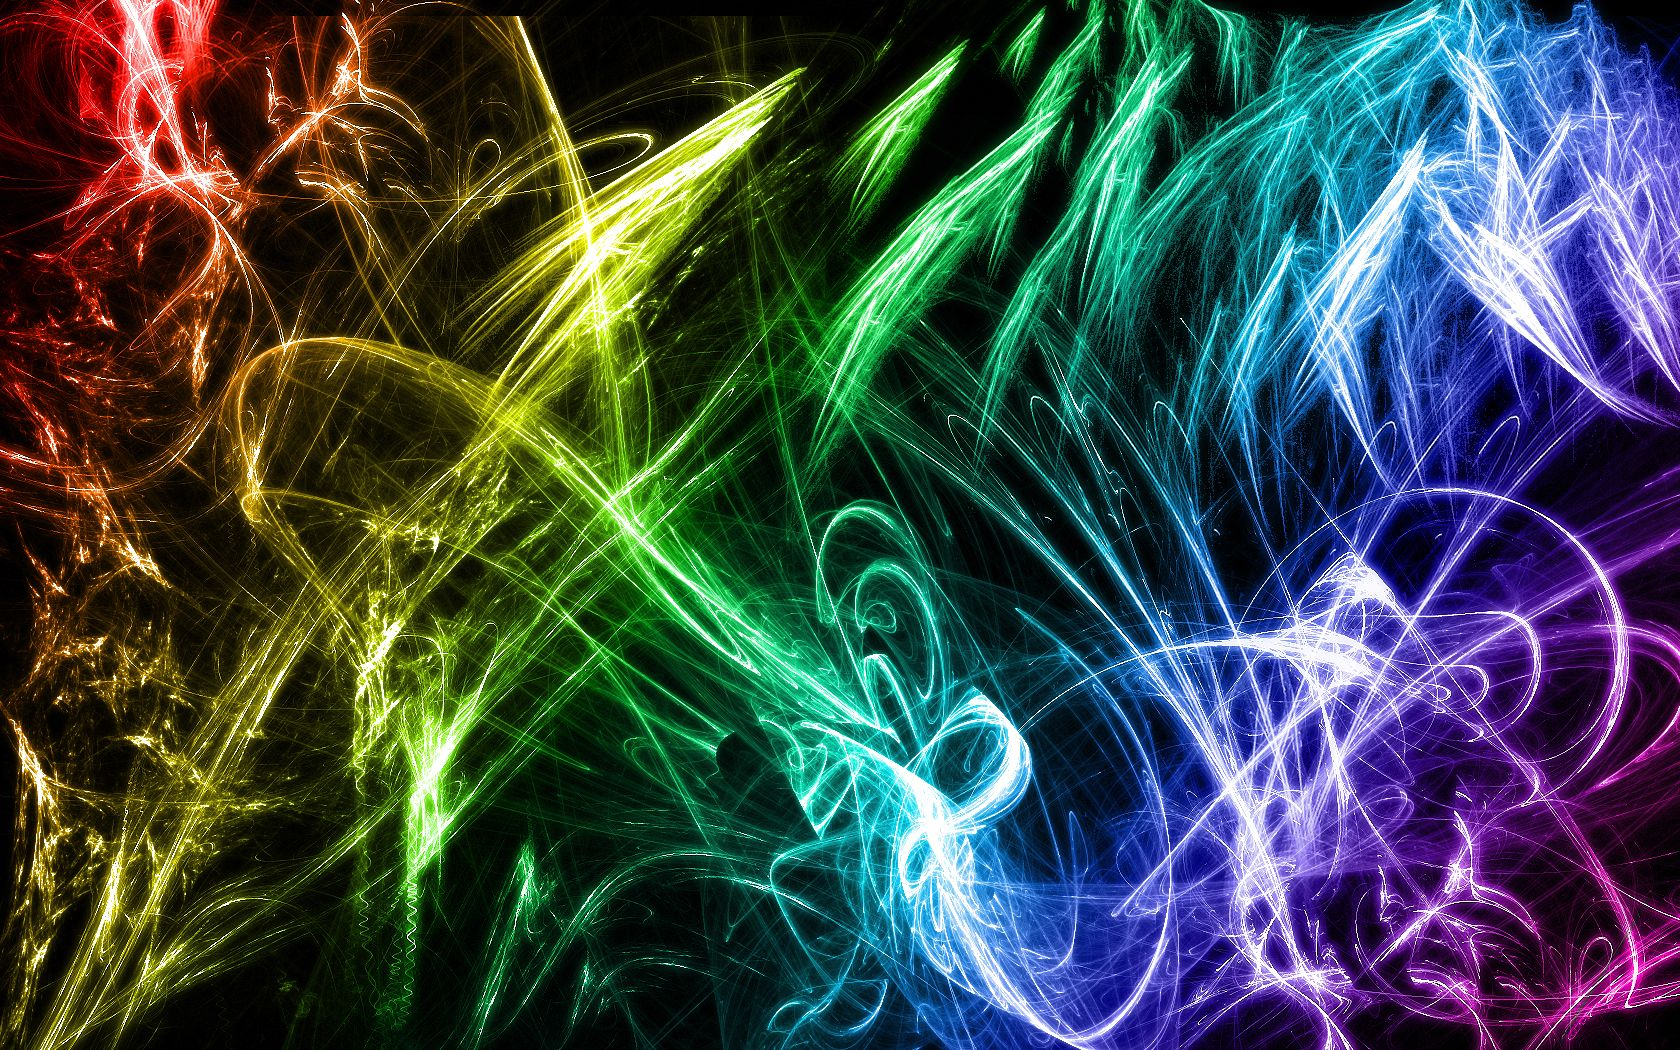 Colorful Abstract Wallpapers For Desktop